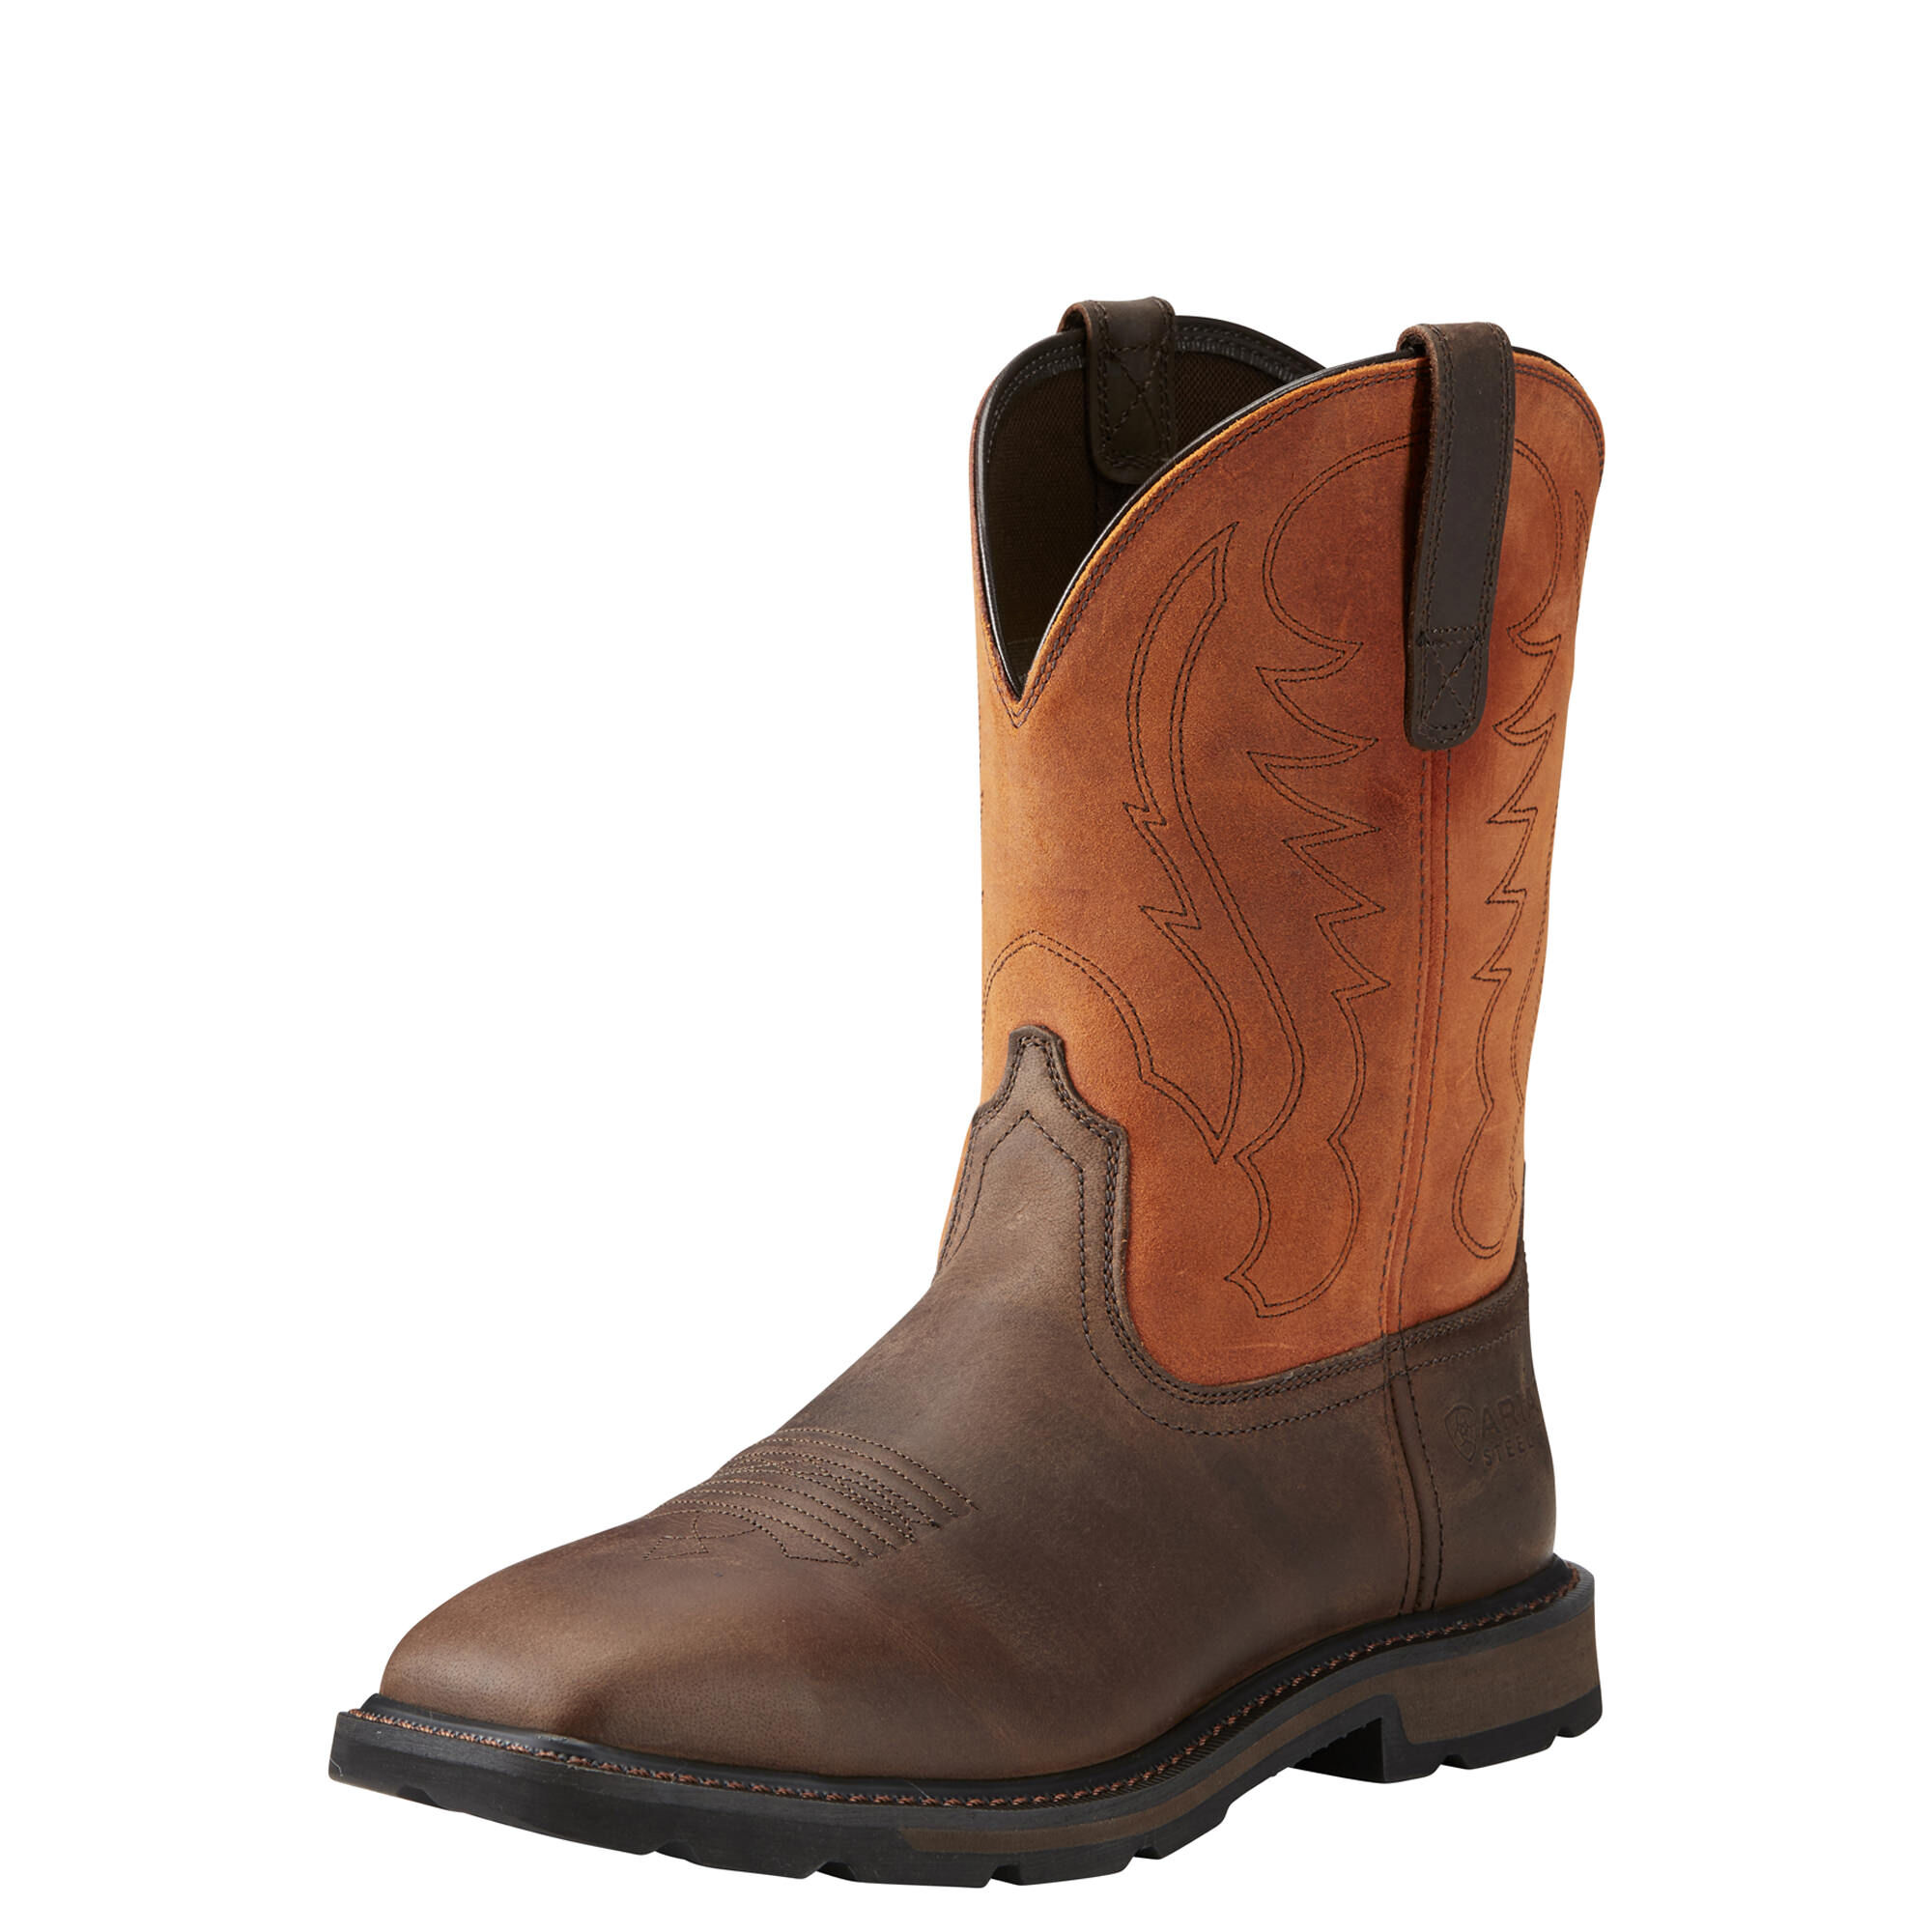 Fast Shipping New Details about  /Ariat Terrain Wide Square Toe Steel Toe Work Boots 10016379